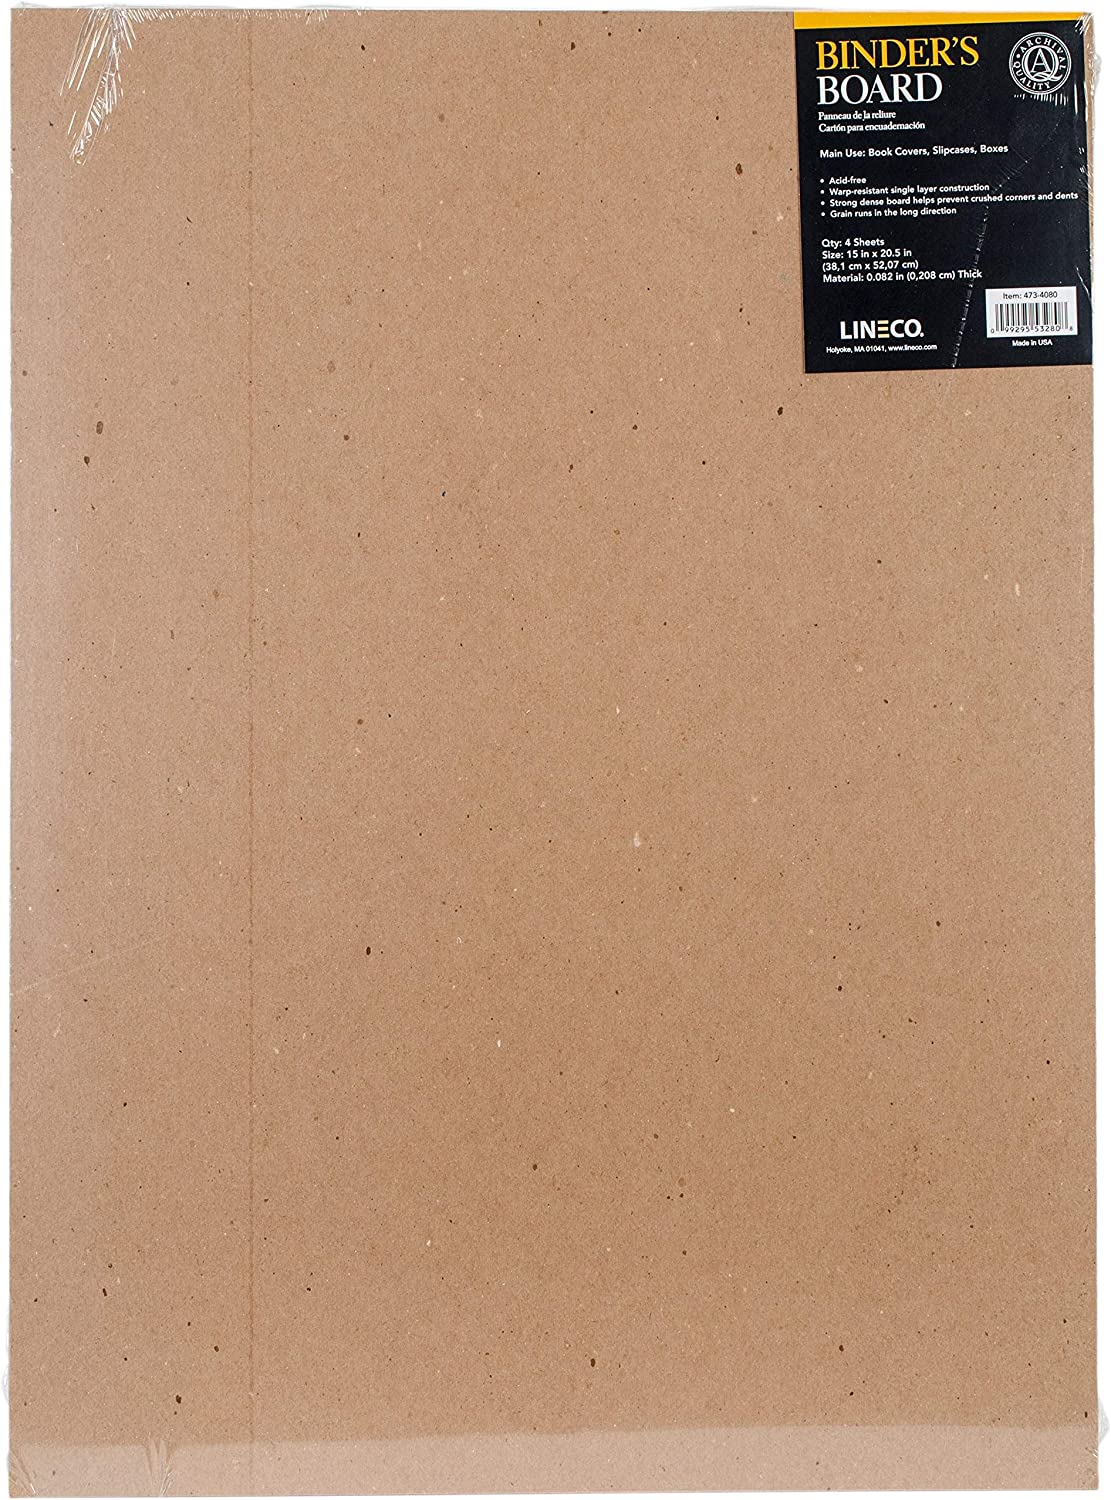 0.079 pack of 4 x 20 1//2 in Lineco Binders Board 15 in